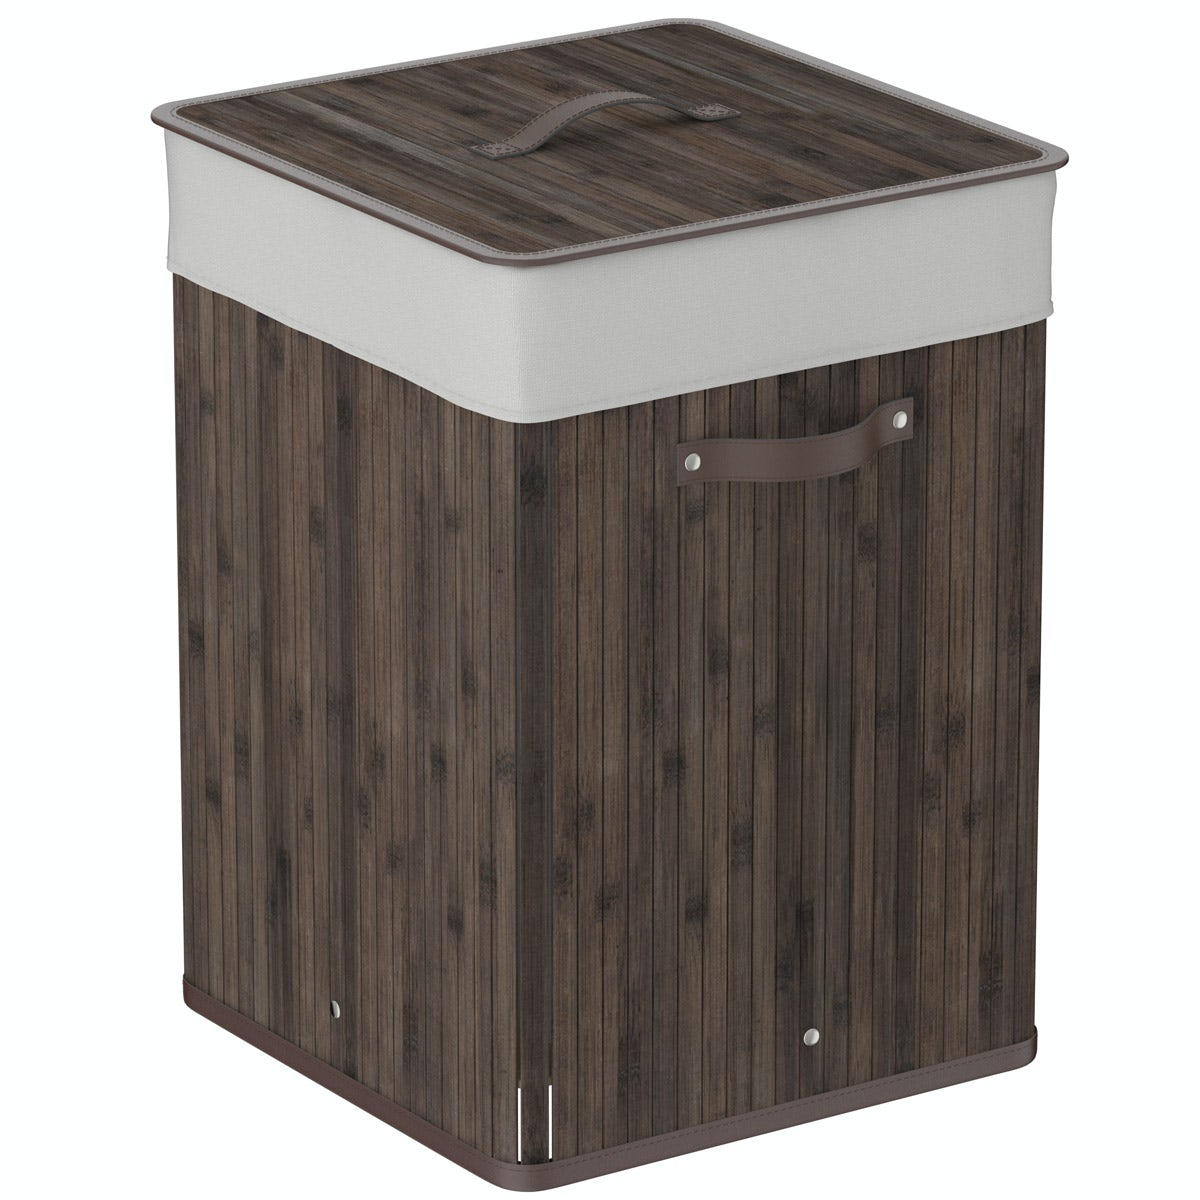 Orchard Natural bamboo dark brown square laundry basket